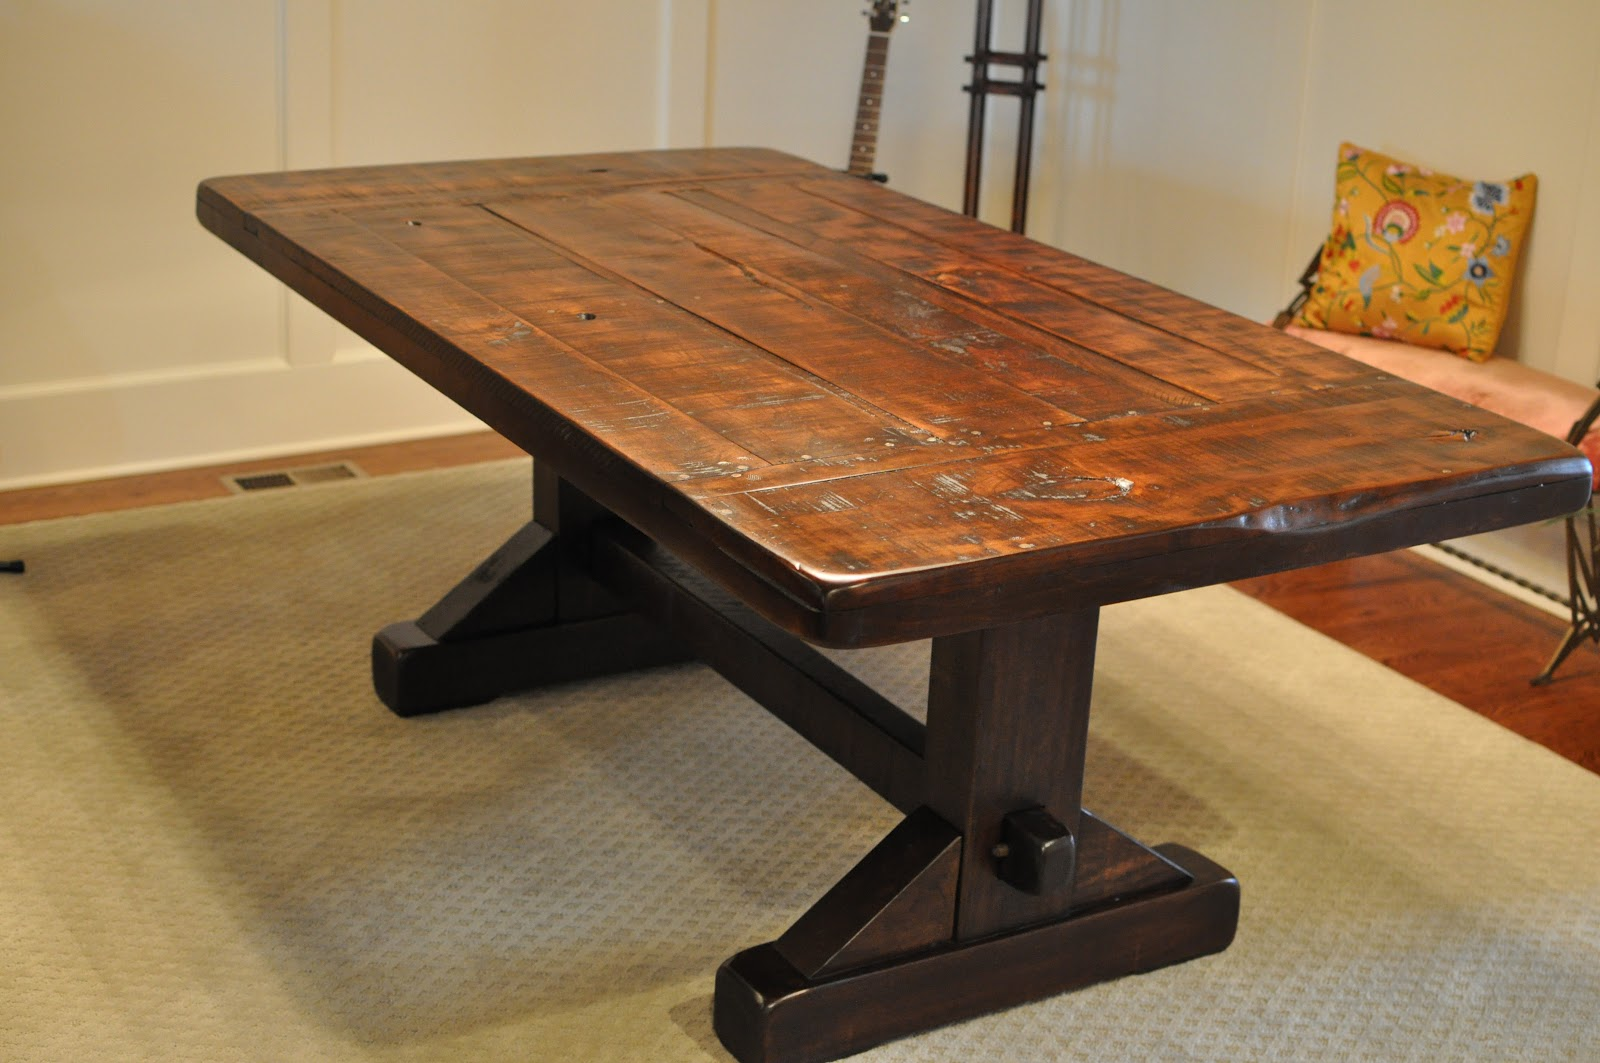 Dining Table: Rustic Handmade Dining Table